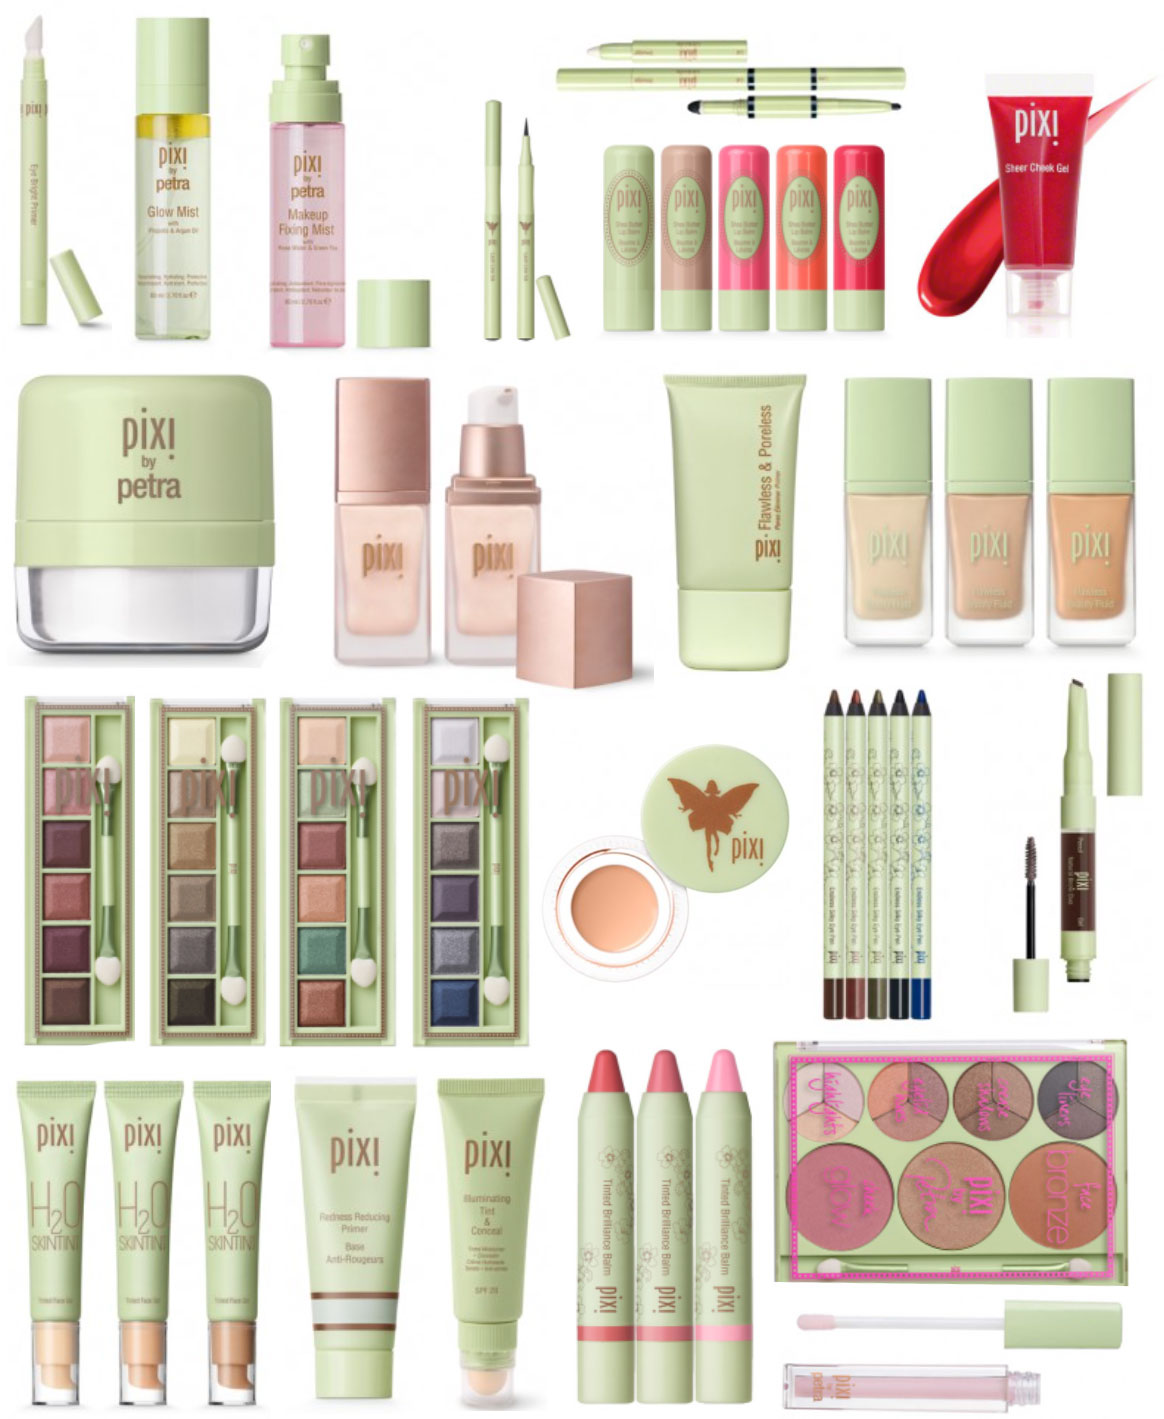 pixi beauty sverige